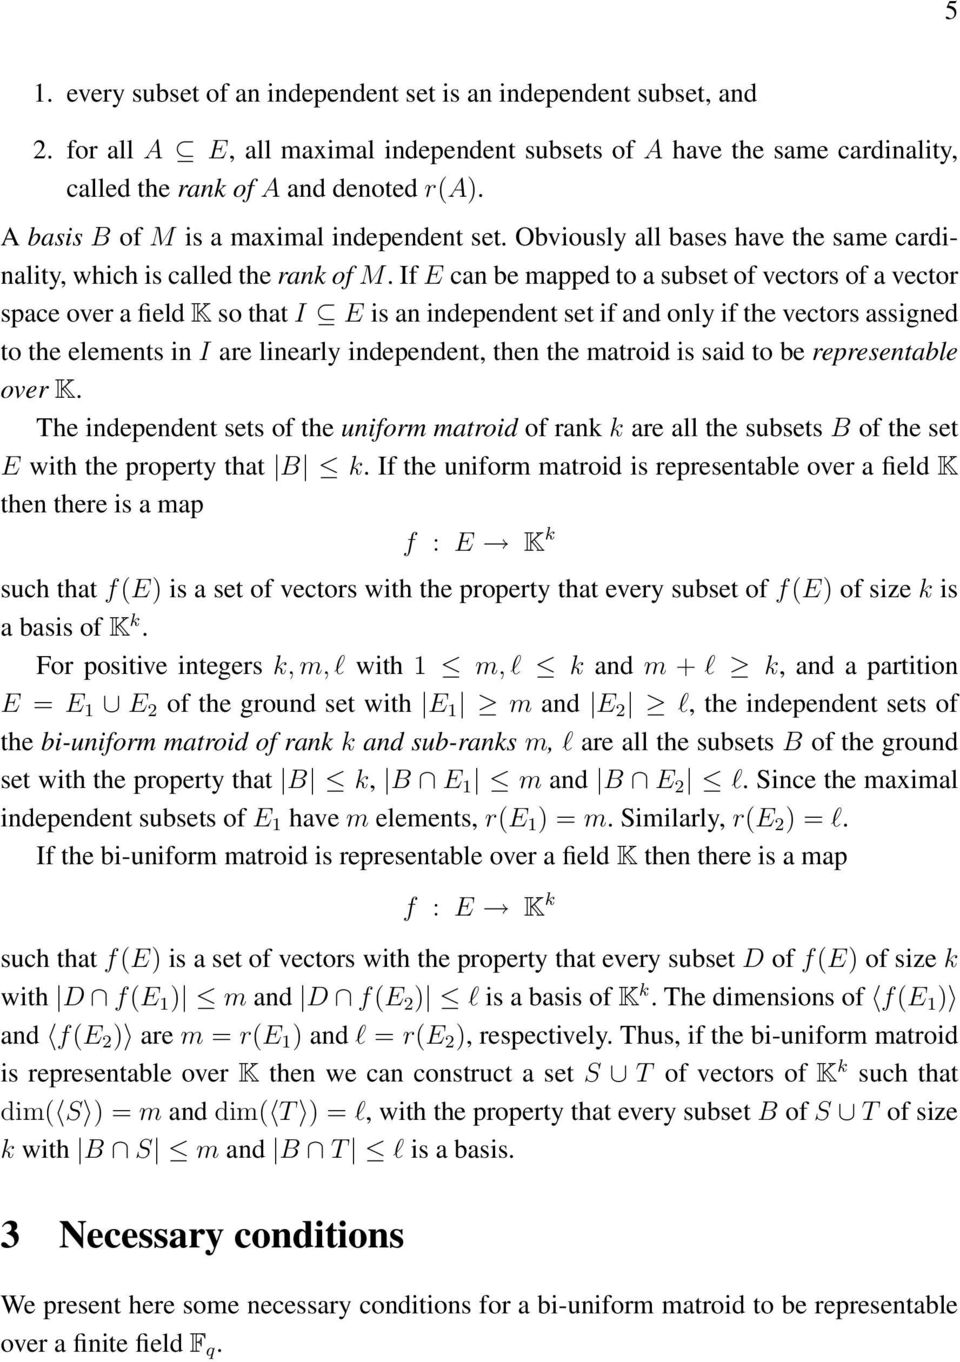 If E can be mapped to a subset of vectors of a vector space over a field K so that I E is an independent set if and only if the vectors assigned to the elements in I are linearly independent, then